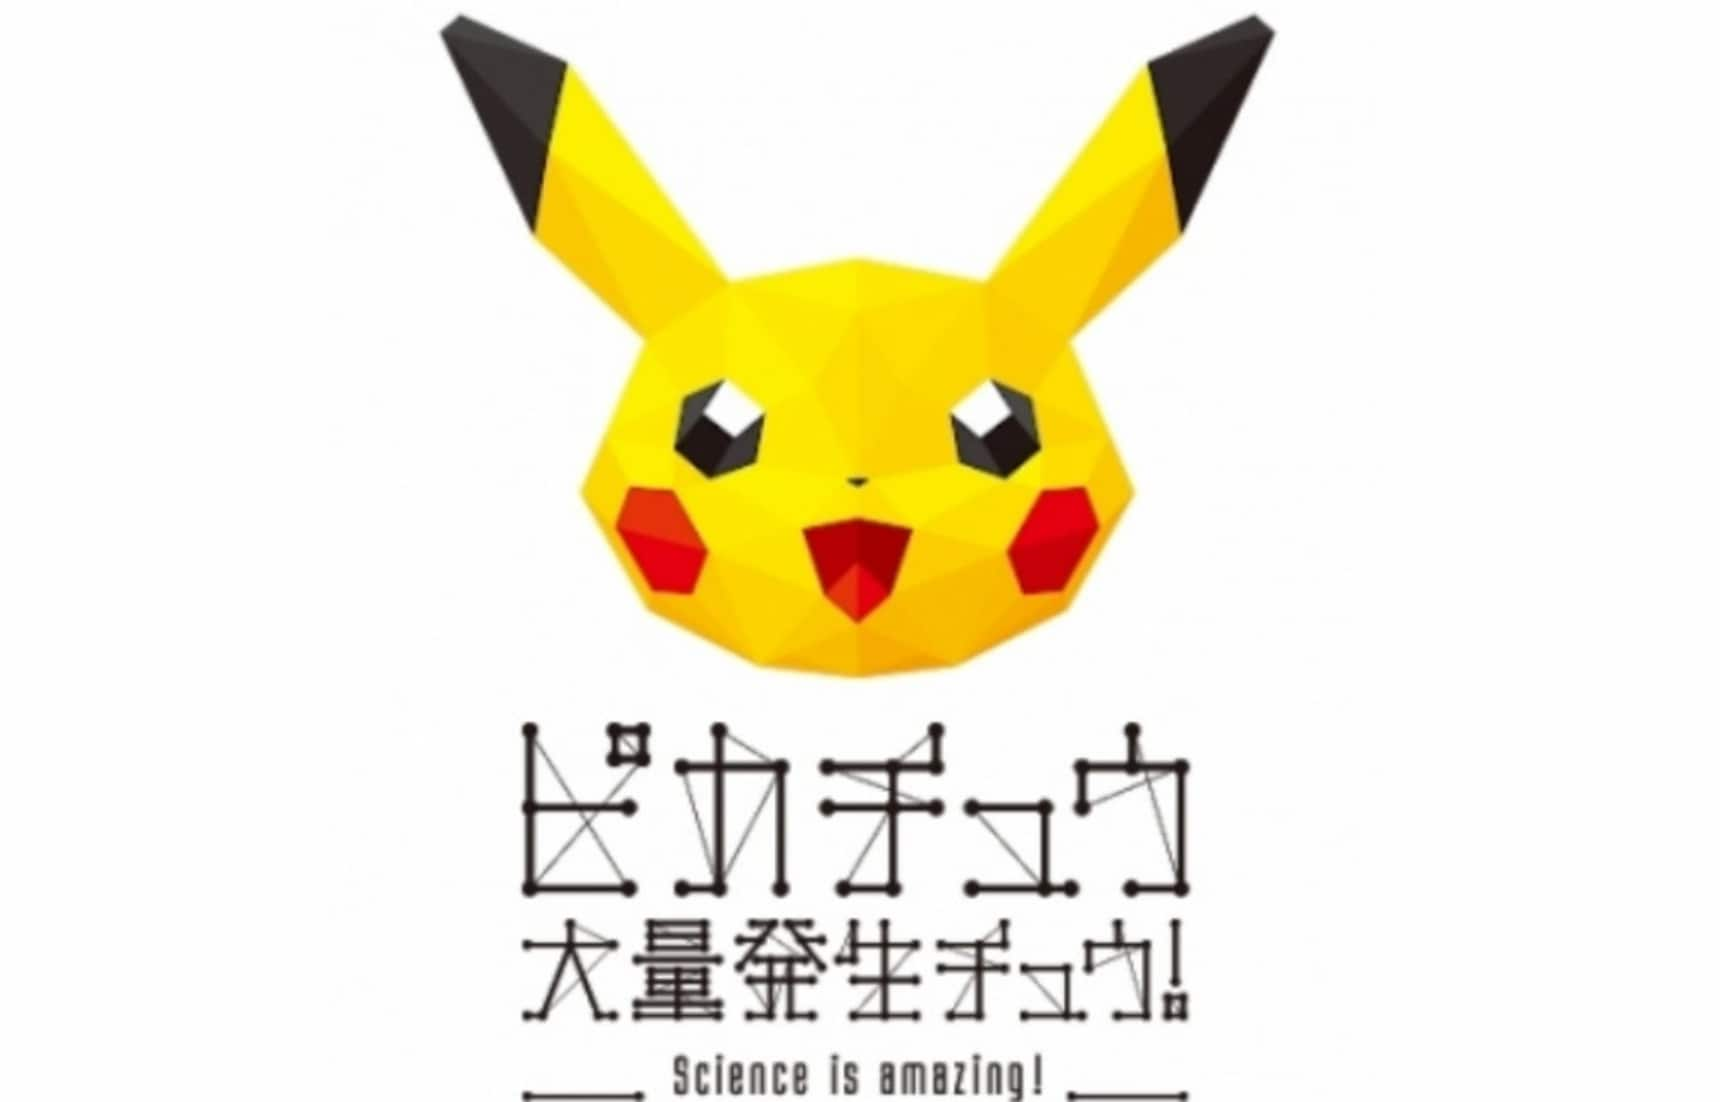 Are You Ready for Pikachu Outbreak 2018?